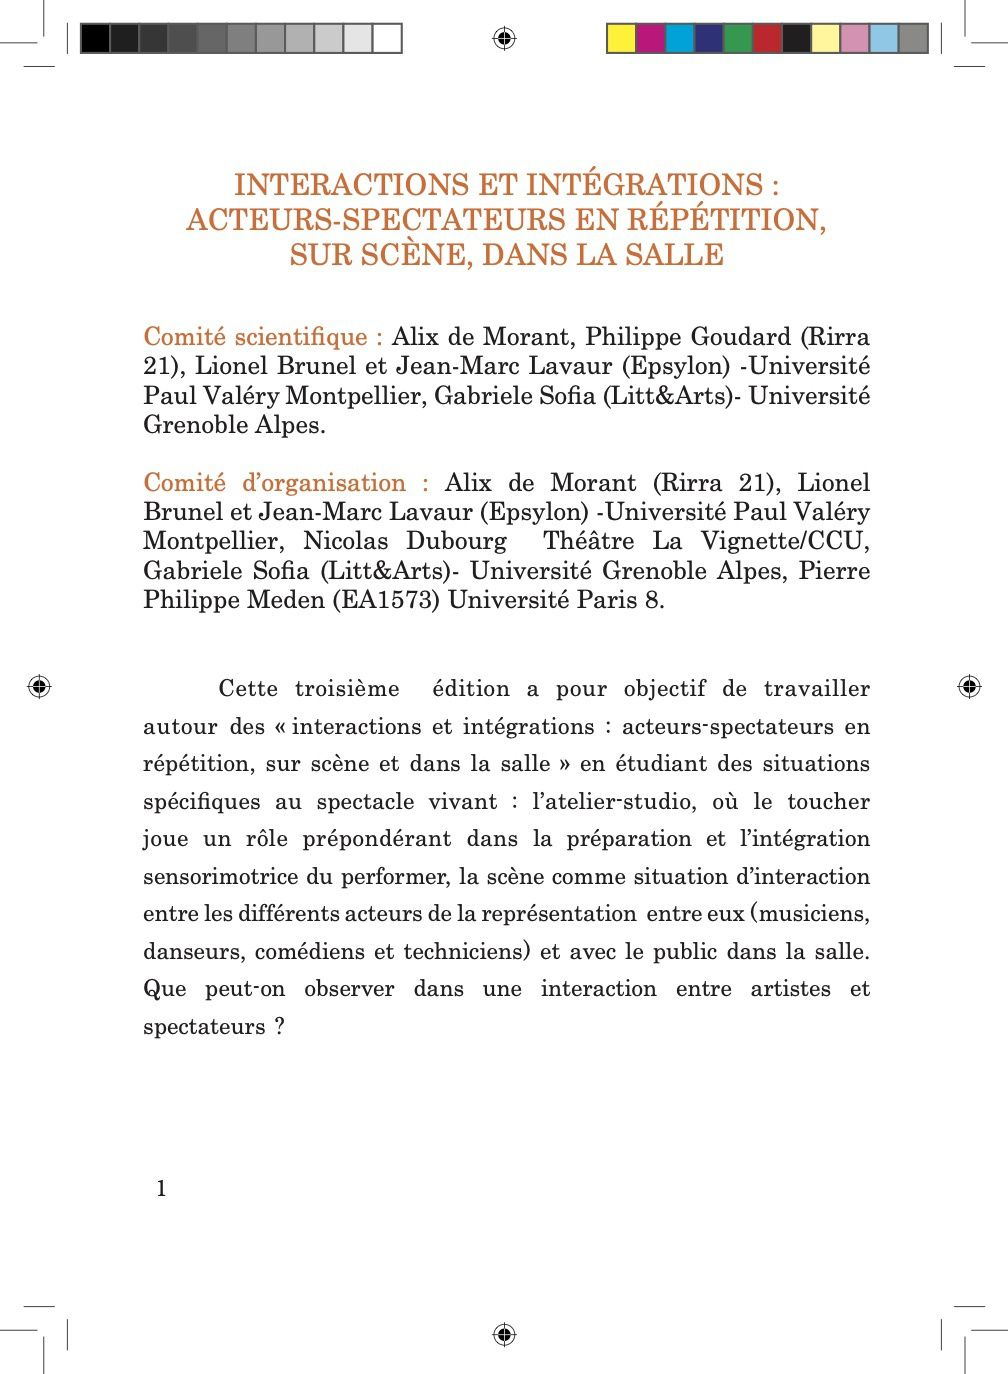 Sciences Cognitives et Spectacle Vivant 3e Colloque International 24-25 Octobre 2019